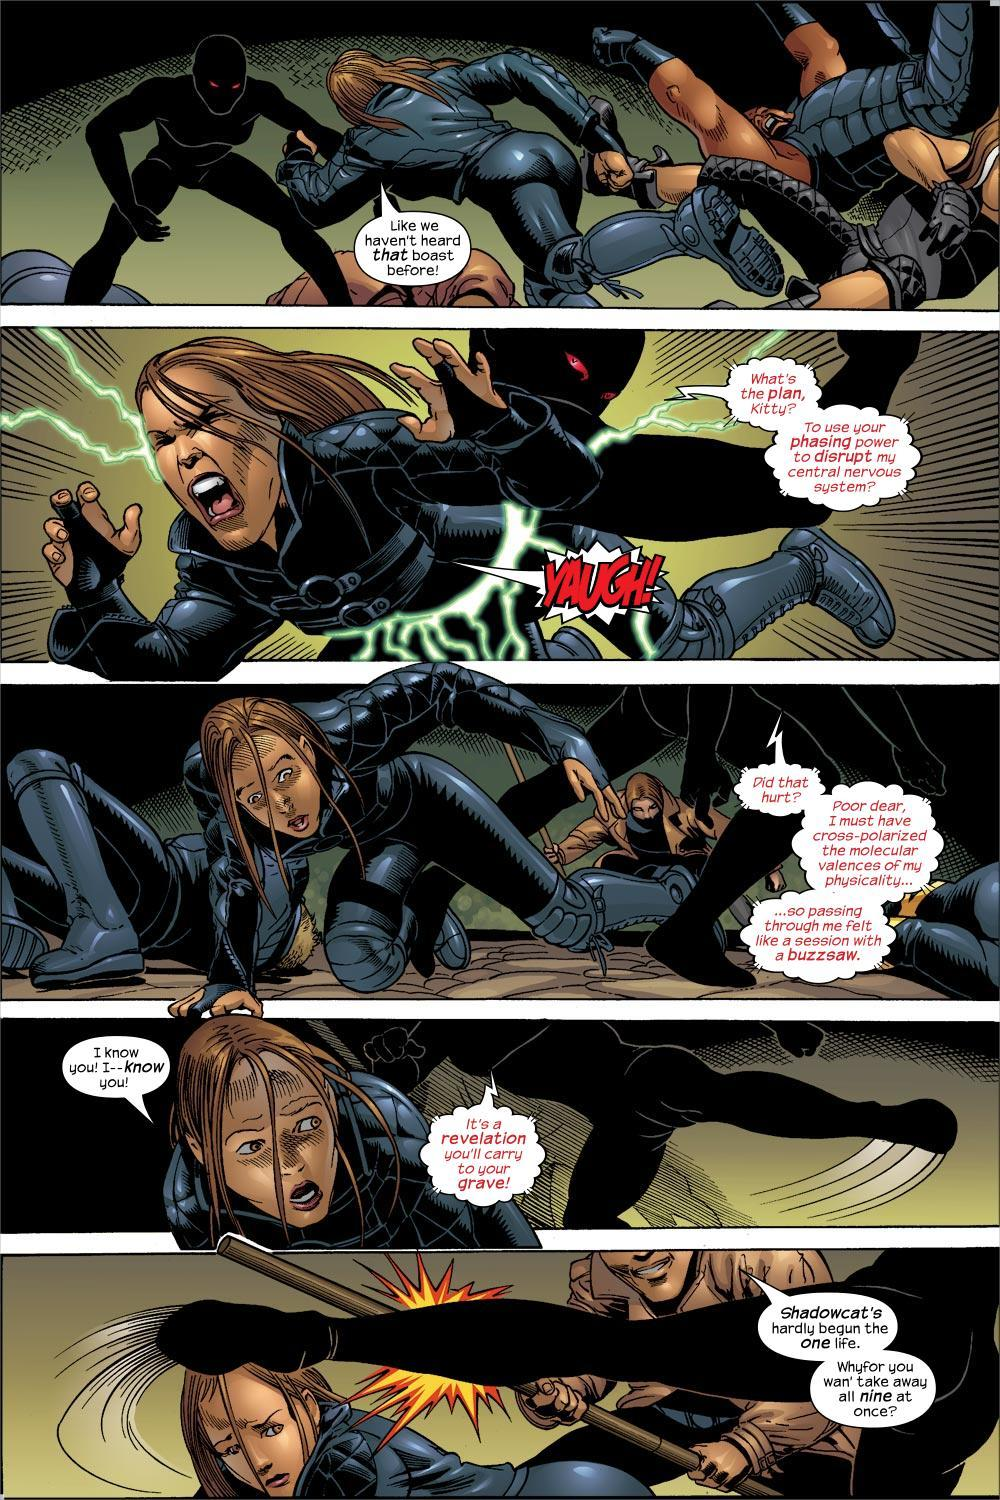 While corrupted by Bogan, Rachel cross polarized her molecular valences to disrupt Kitty's phasing - X-Treme X-Men V1 #44